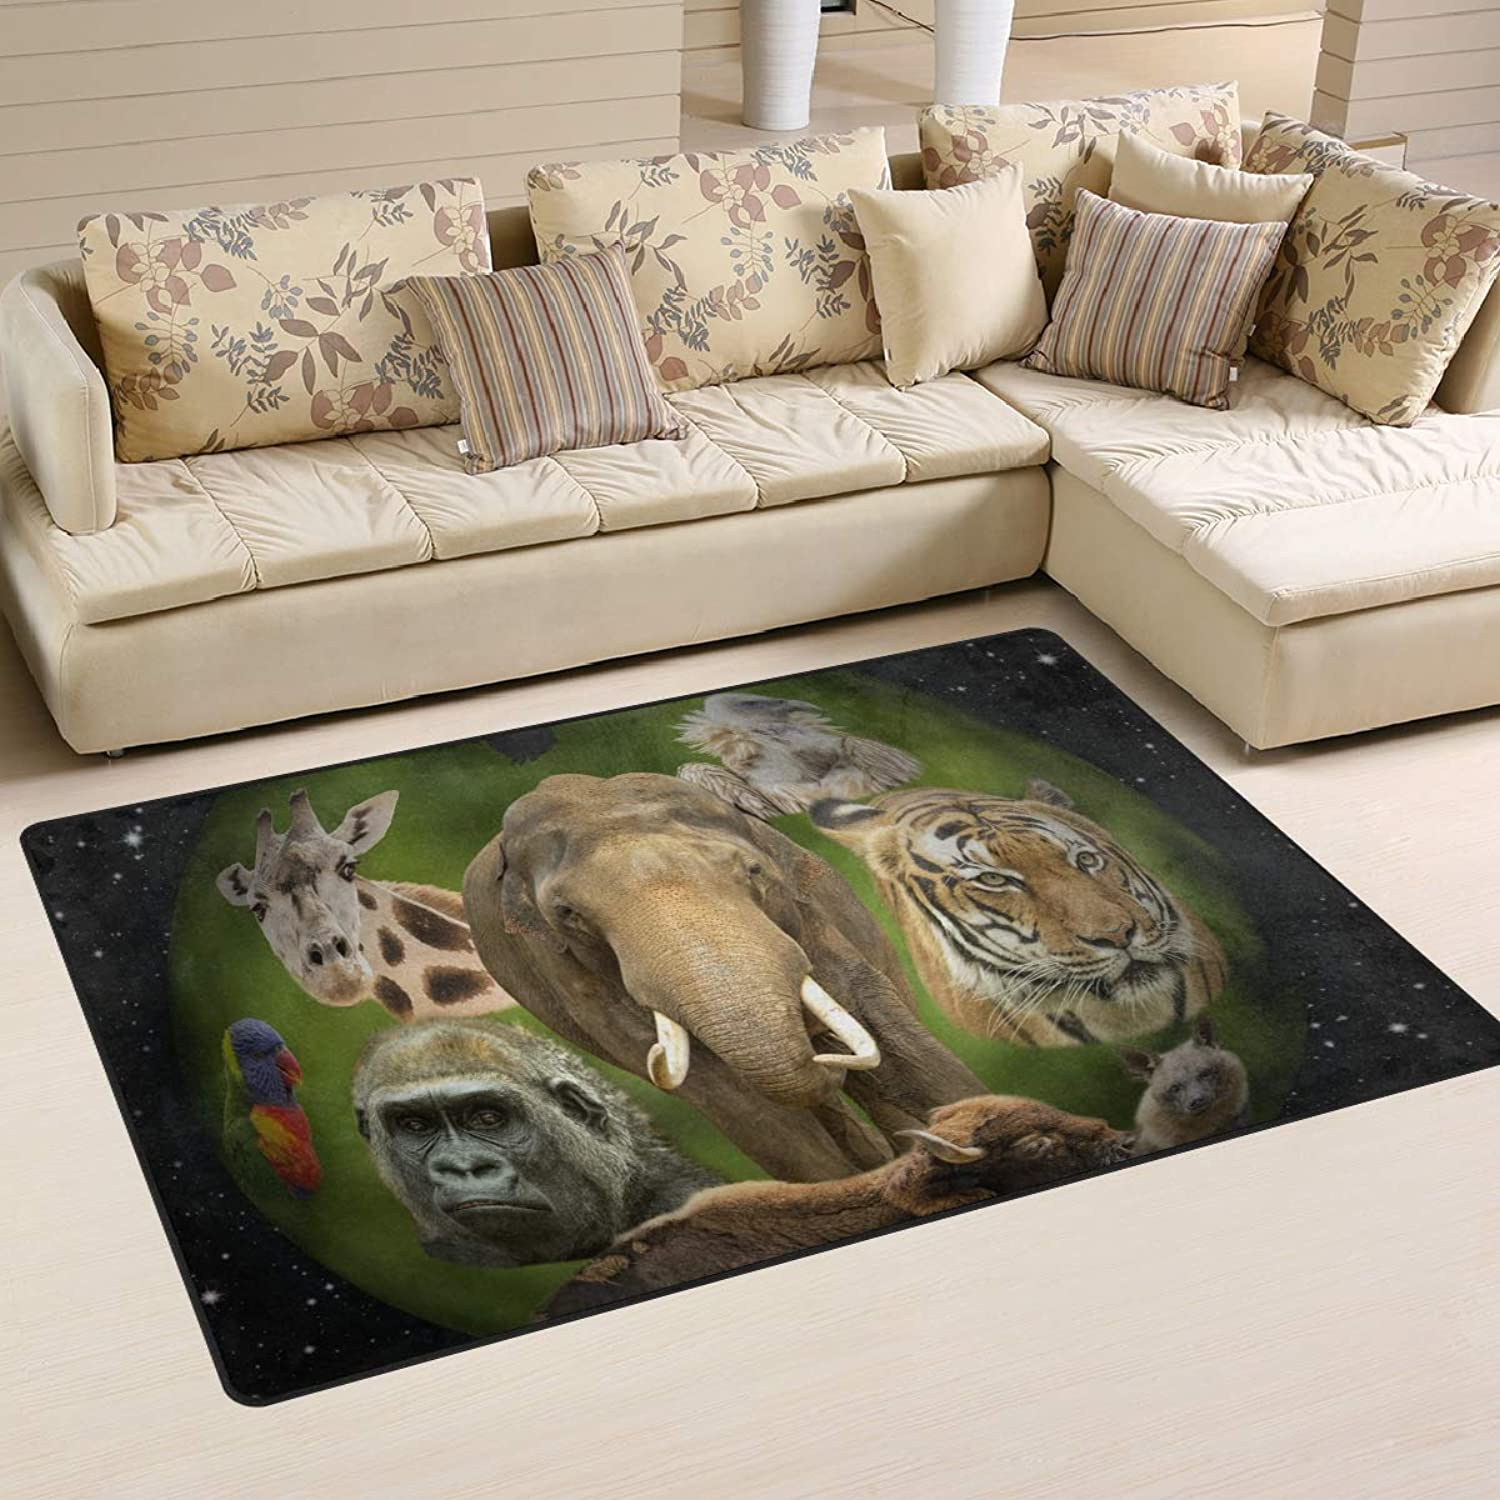 FANTAZIO Area Rug Accessories Animal Planet Entry doormats for Corners and Edge Anti-Curling Ideal Rug Stopper 31x20in 60x39in